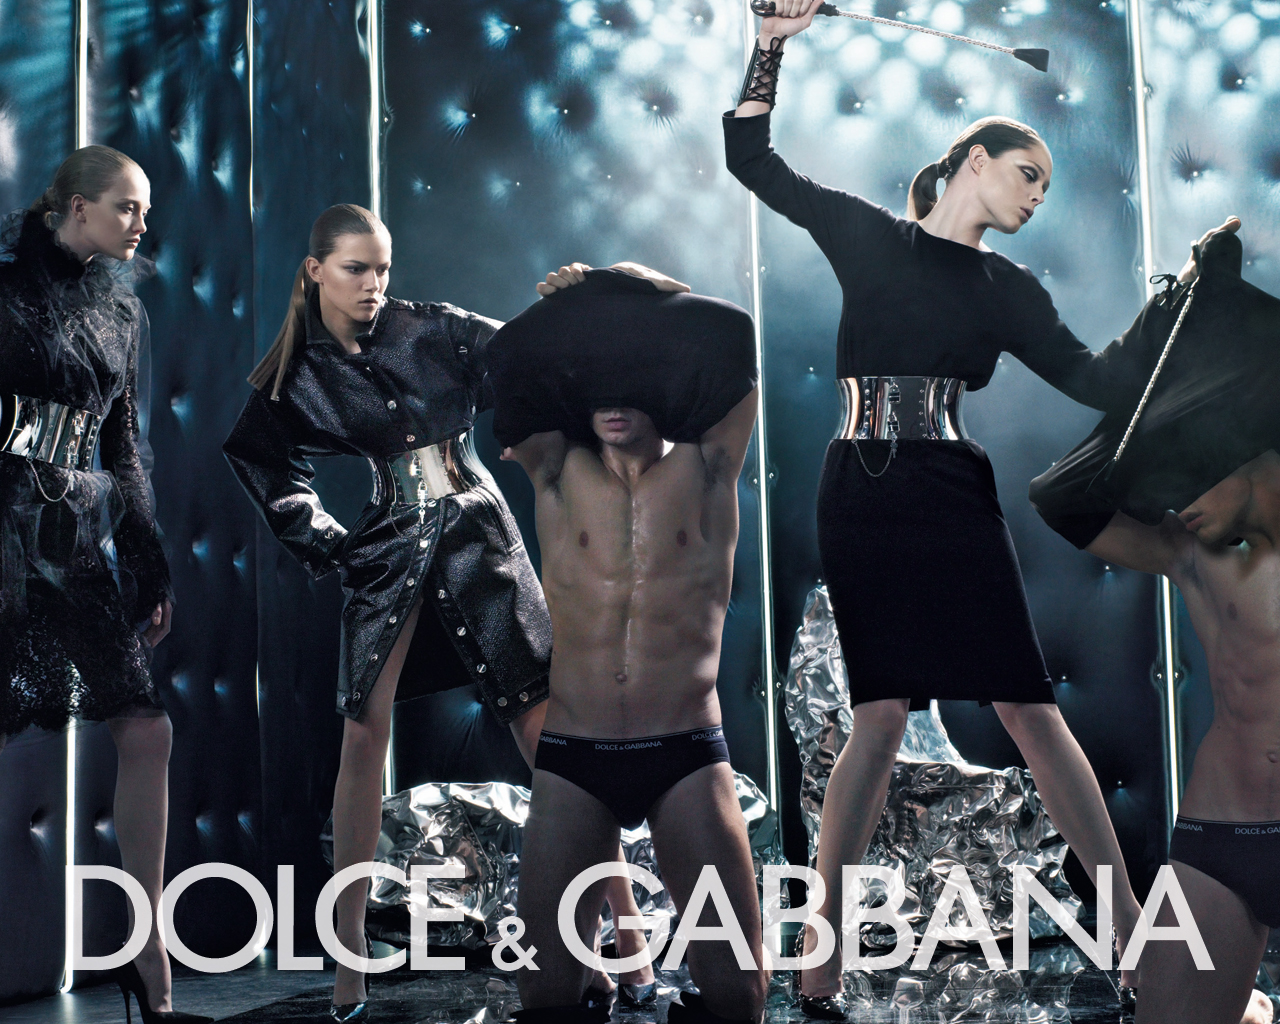 Dolce---Gabbana---wallpaper-passion-for-